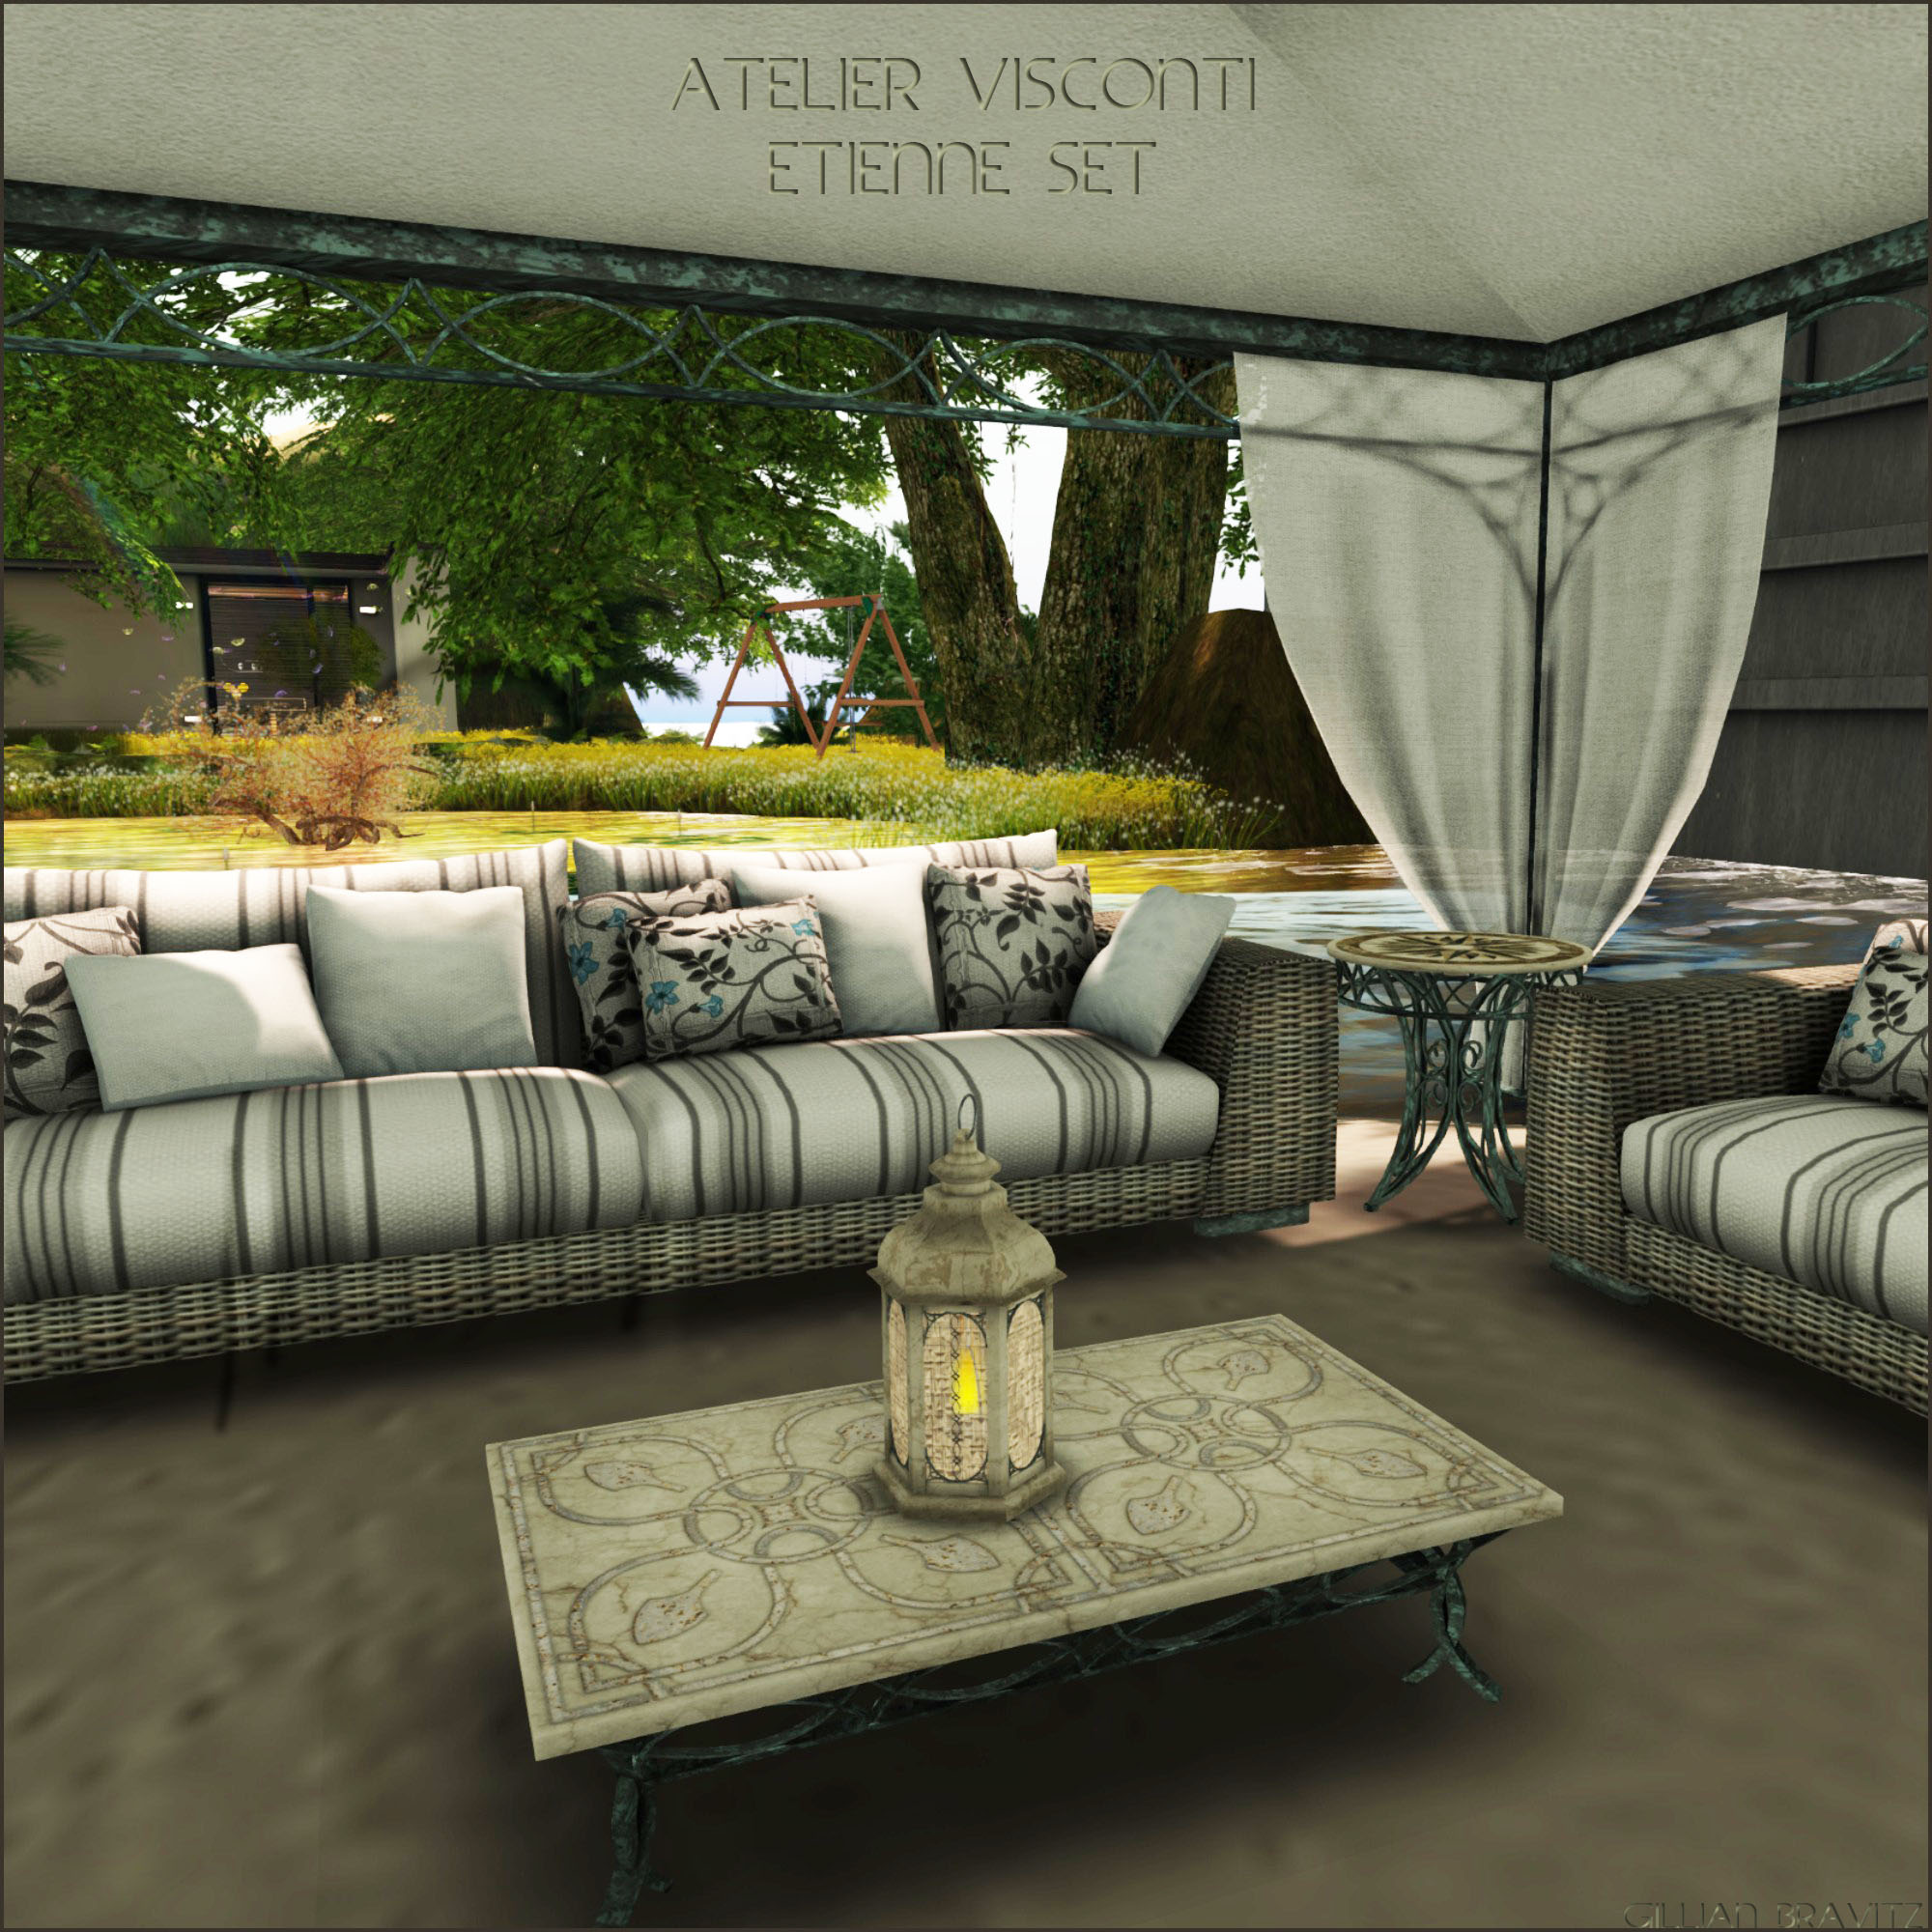 Etienne Set by Atelier Visconti